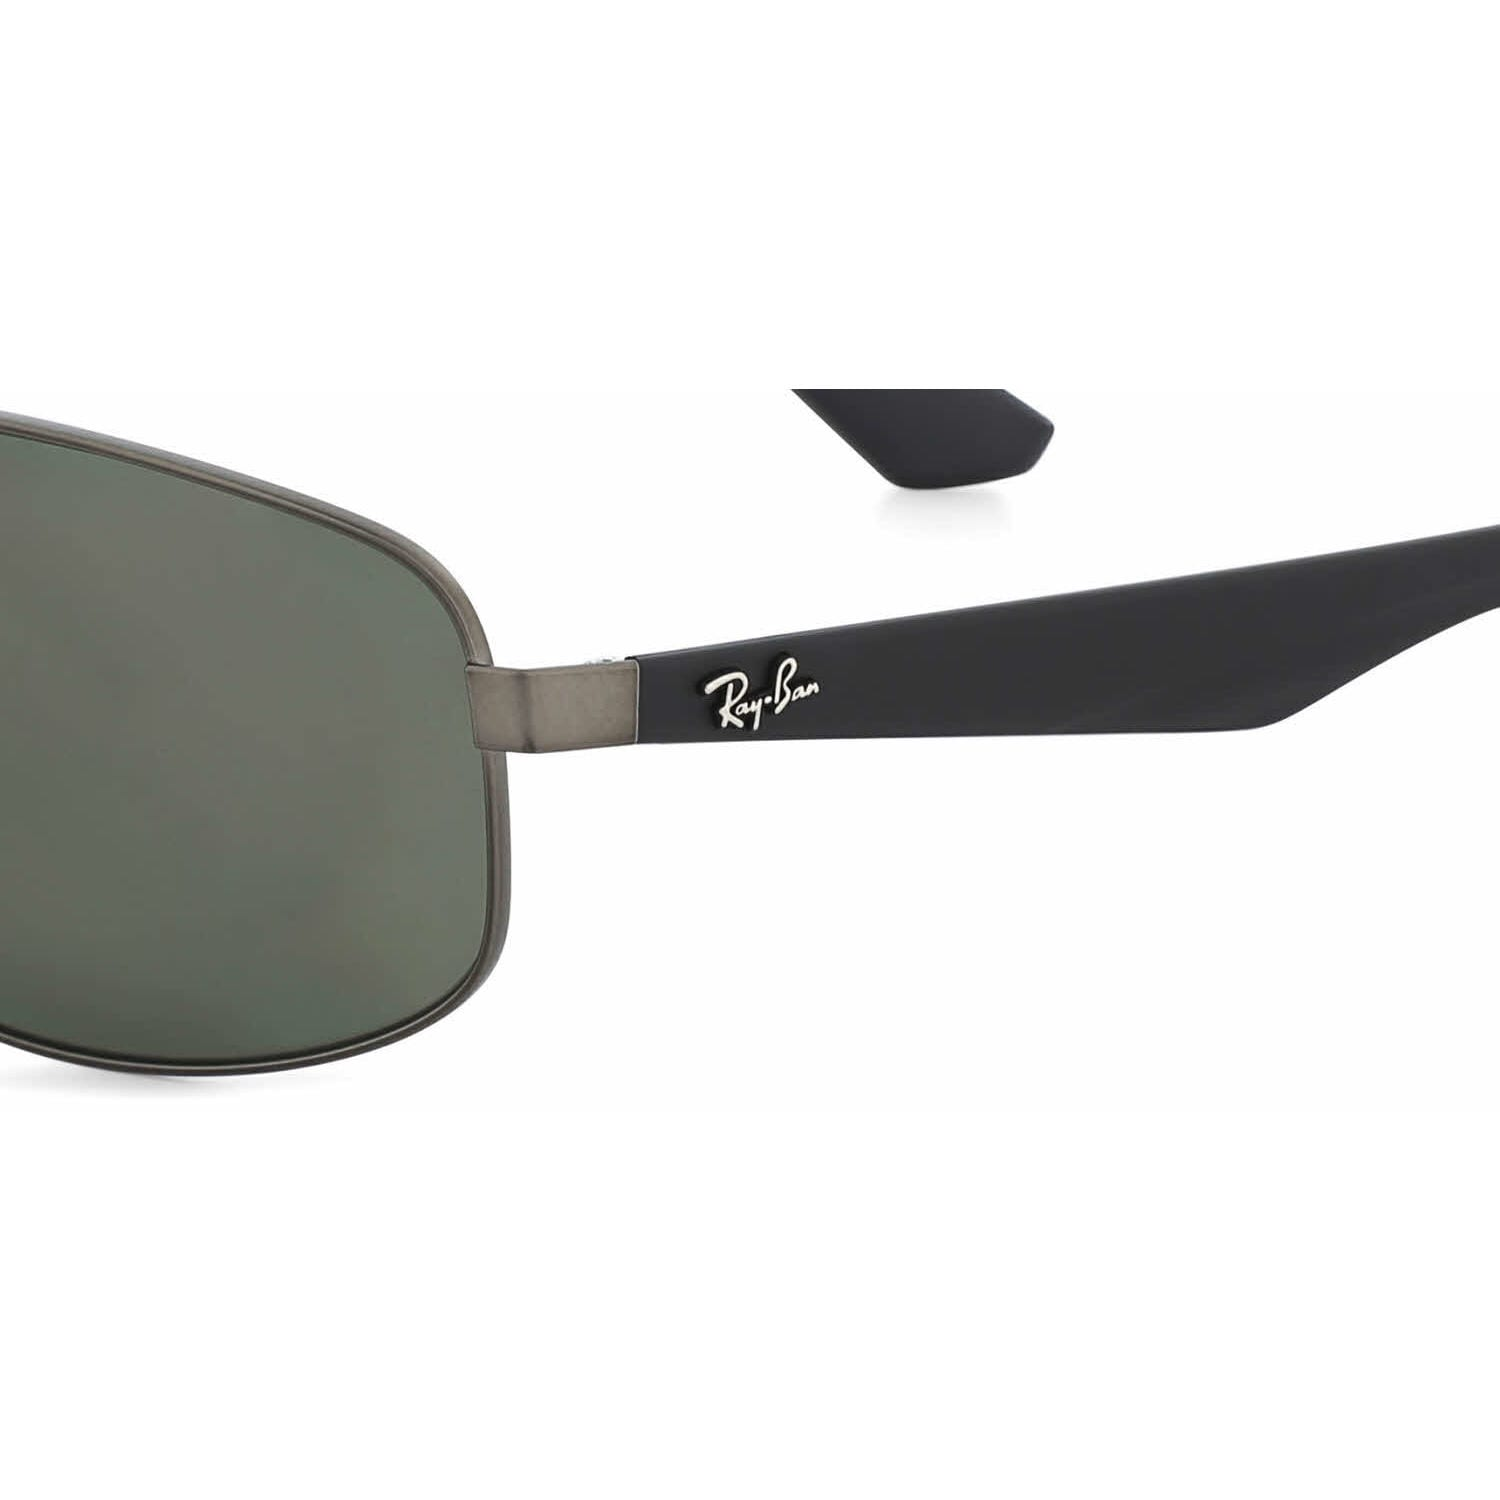 5270b9adb08 Shop Ray-Ban Men s RB3527 006 71 Black Frame Green Classic 61 mm Lens  Sunglasses - Free Shipping Today - Overstock - 16740933